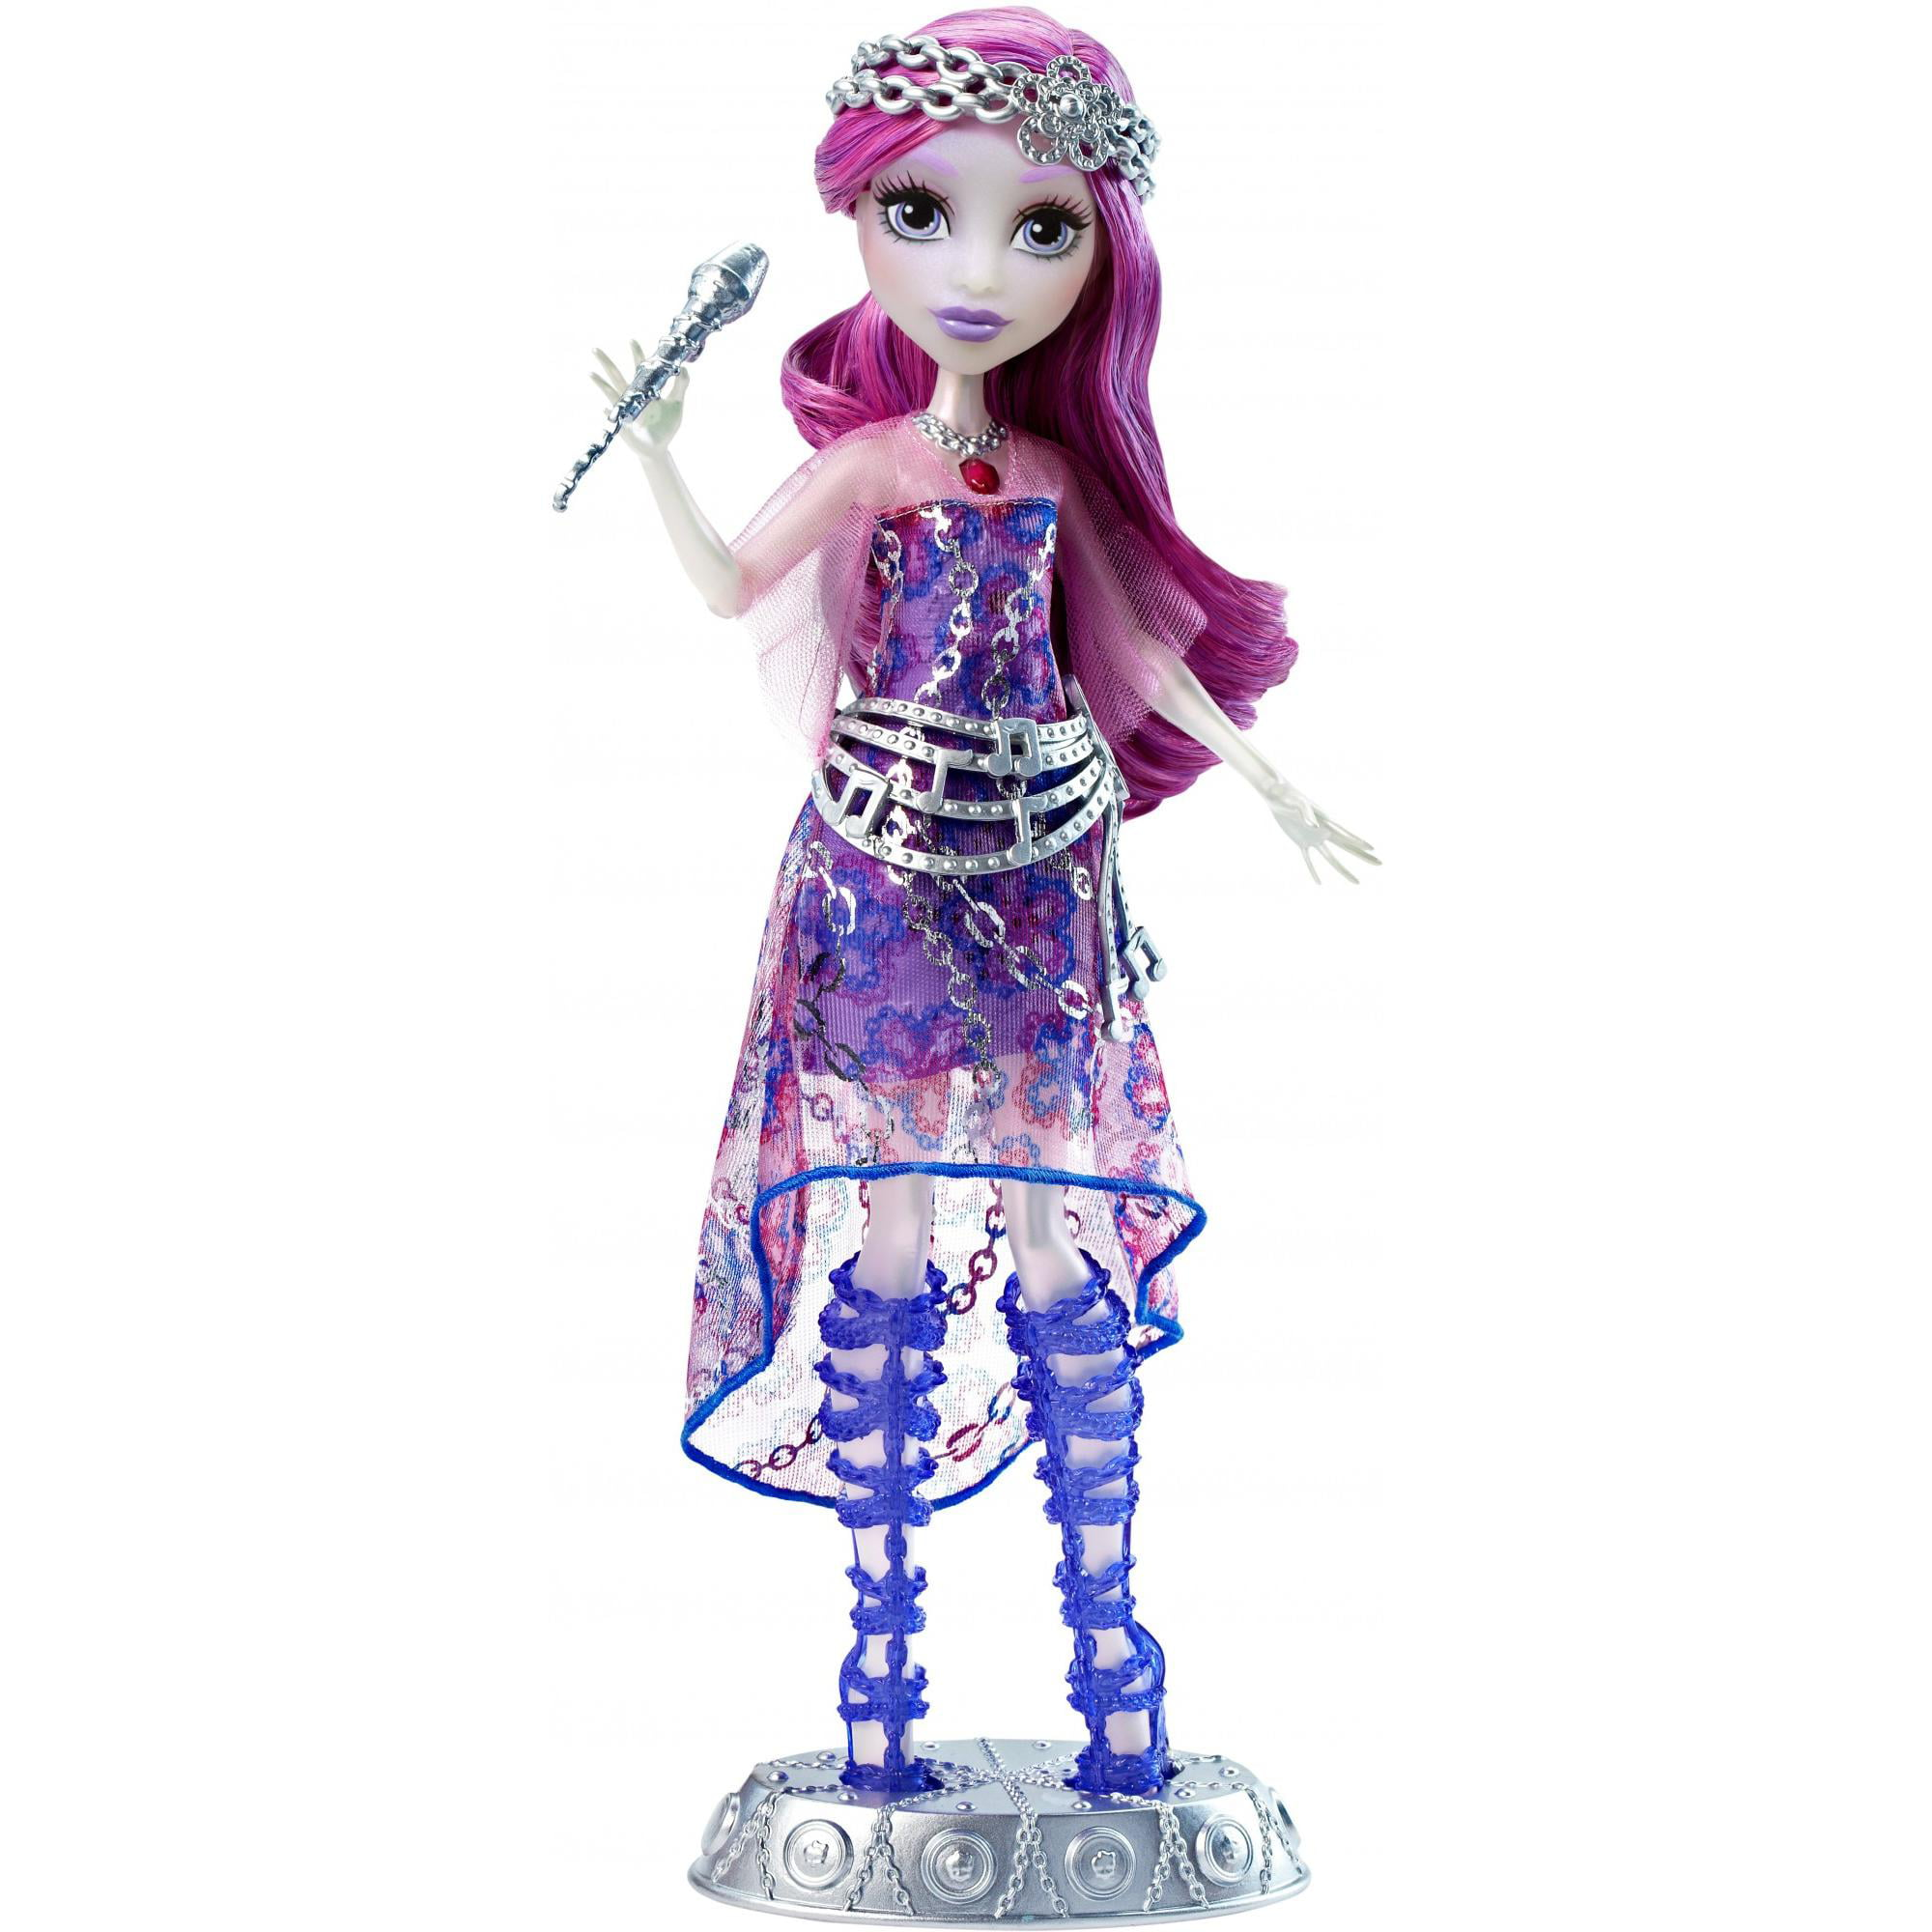 Monster High Welcome To Monster High Singing Popstar Ari Hauntington Doll by MATTEL INC.